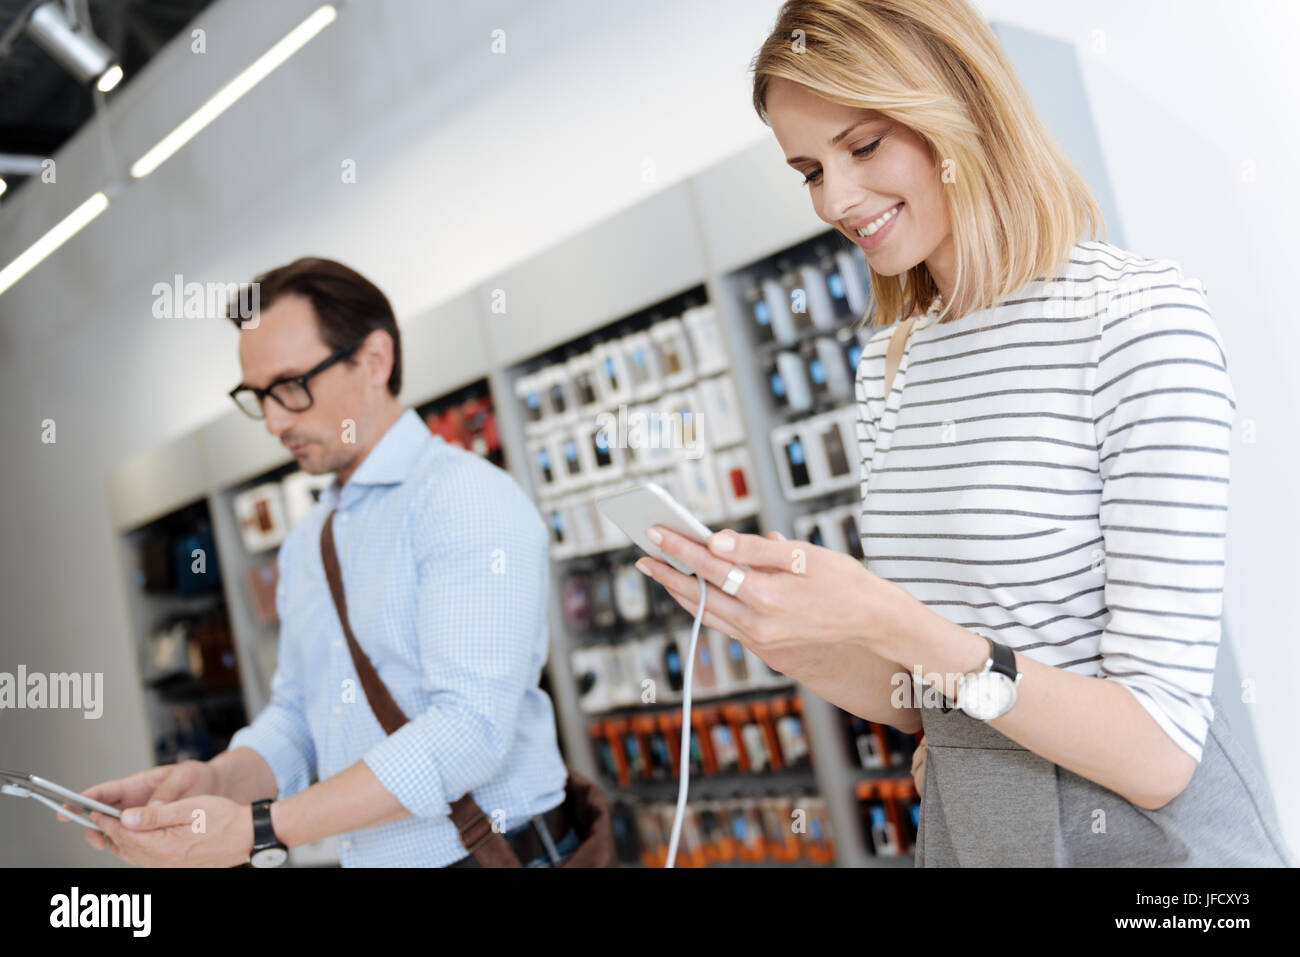 Innovative technologies are popular these days. Selective focus on a pretty blonde woman smiling while testing the - Stock Image